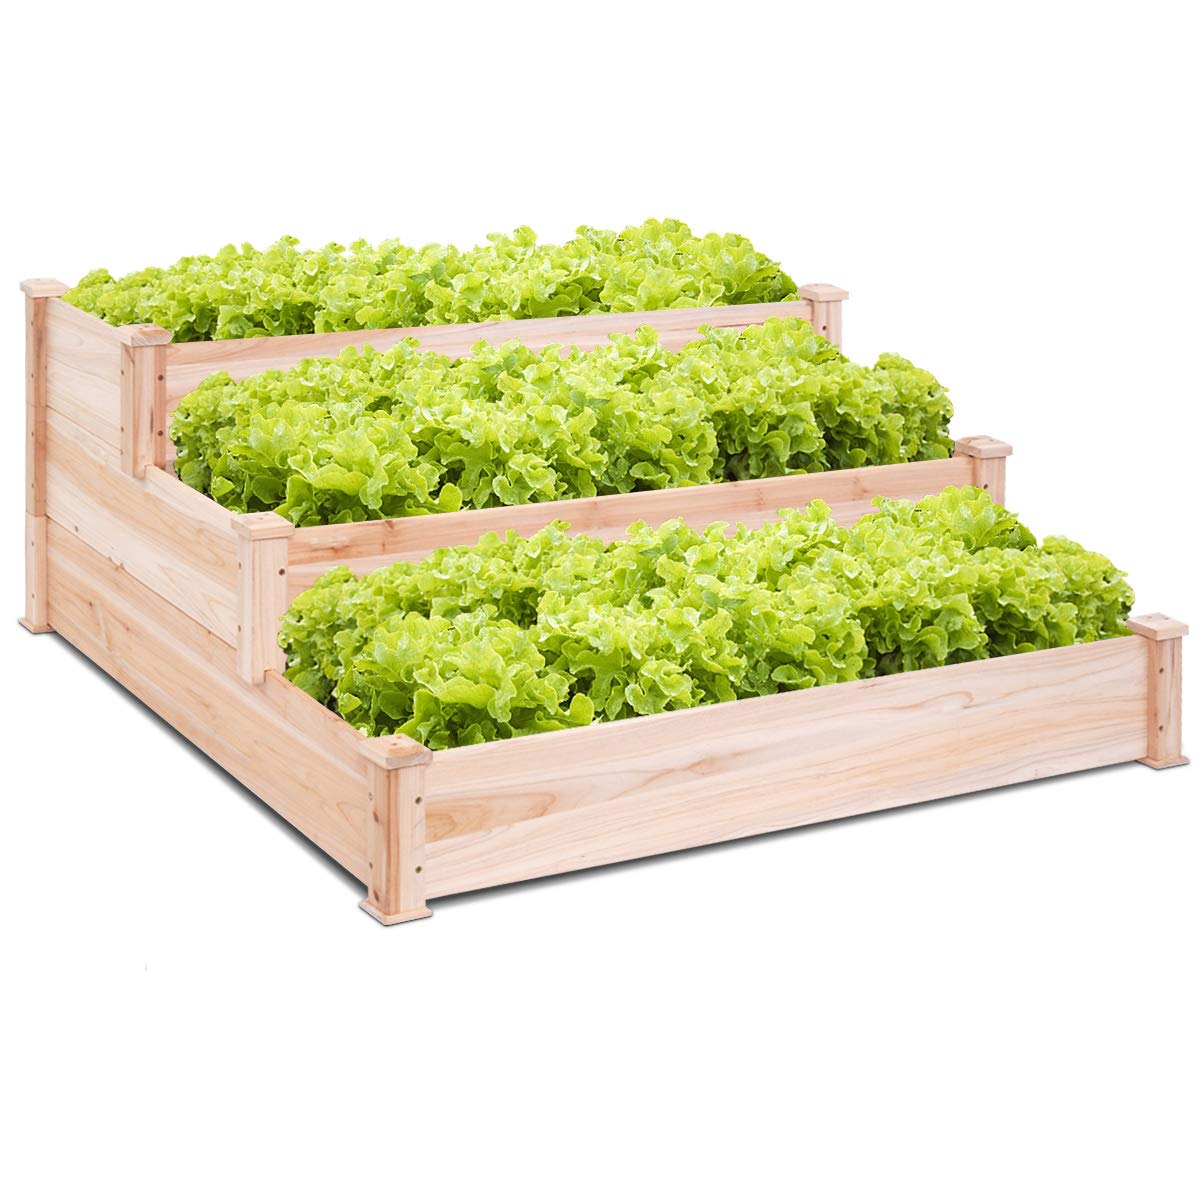 "Giantex 3 Tier Wooden Elevated Raised Garden Bed Planter Kit Grow Gardening Vegetable Natural Cedar Wood, 49""X49""X22"""